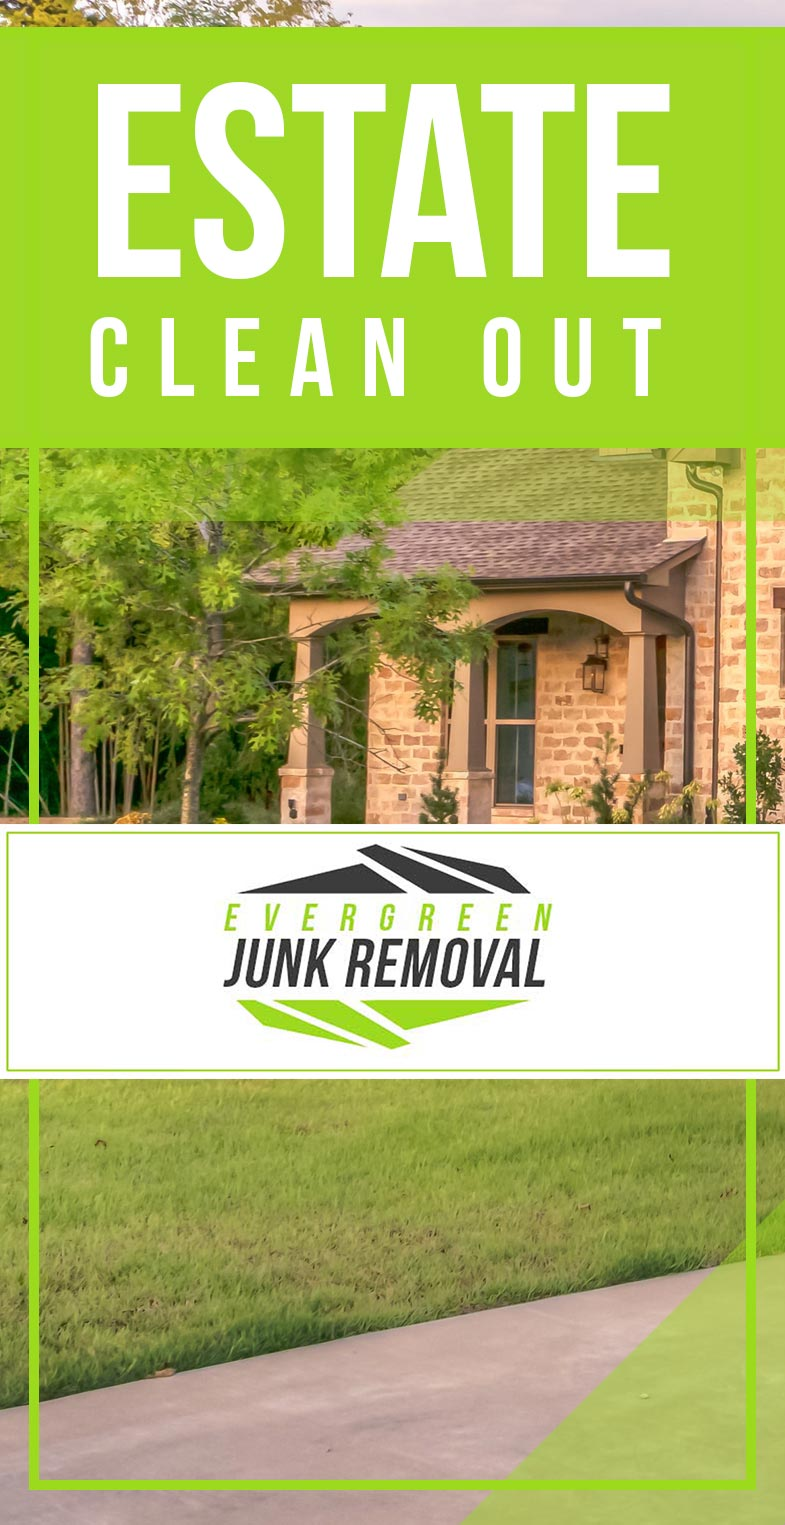 Junk Removal Hialeah Estate Clean Out